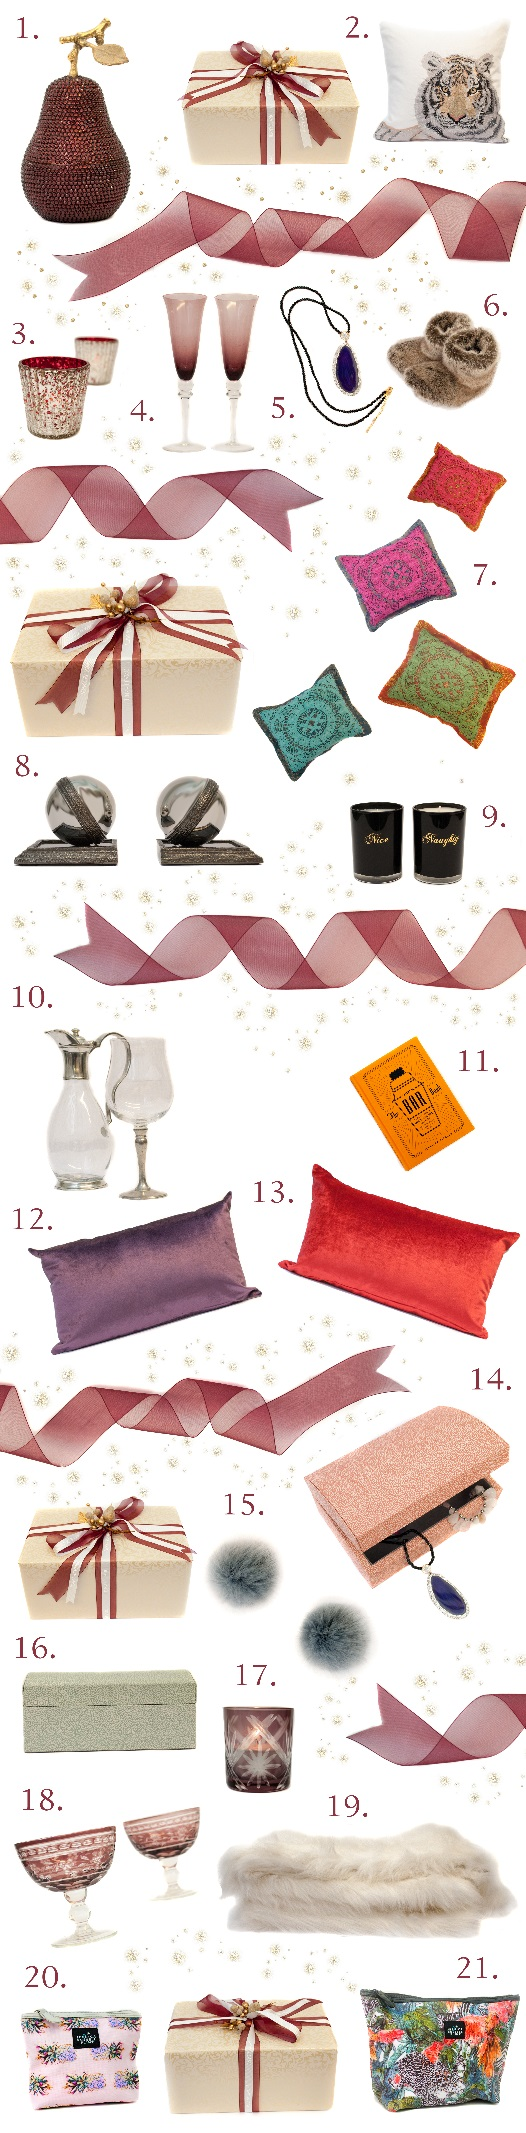 Jenny Blanc Blog - Ultimate Christmas Gift Guide